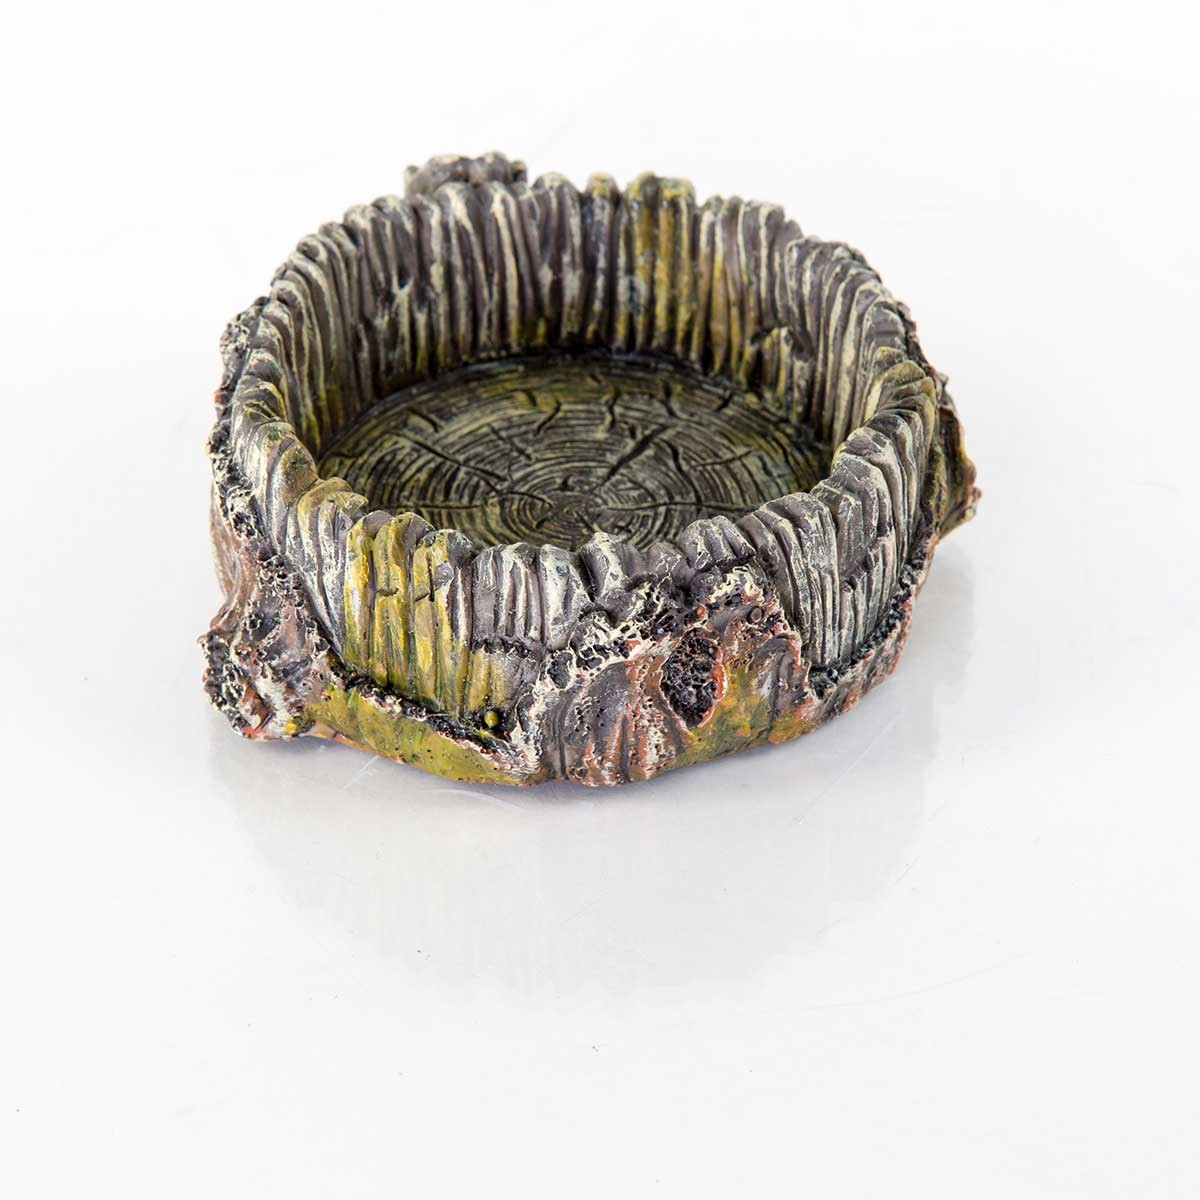 Decorative Stump Bowl 60231100